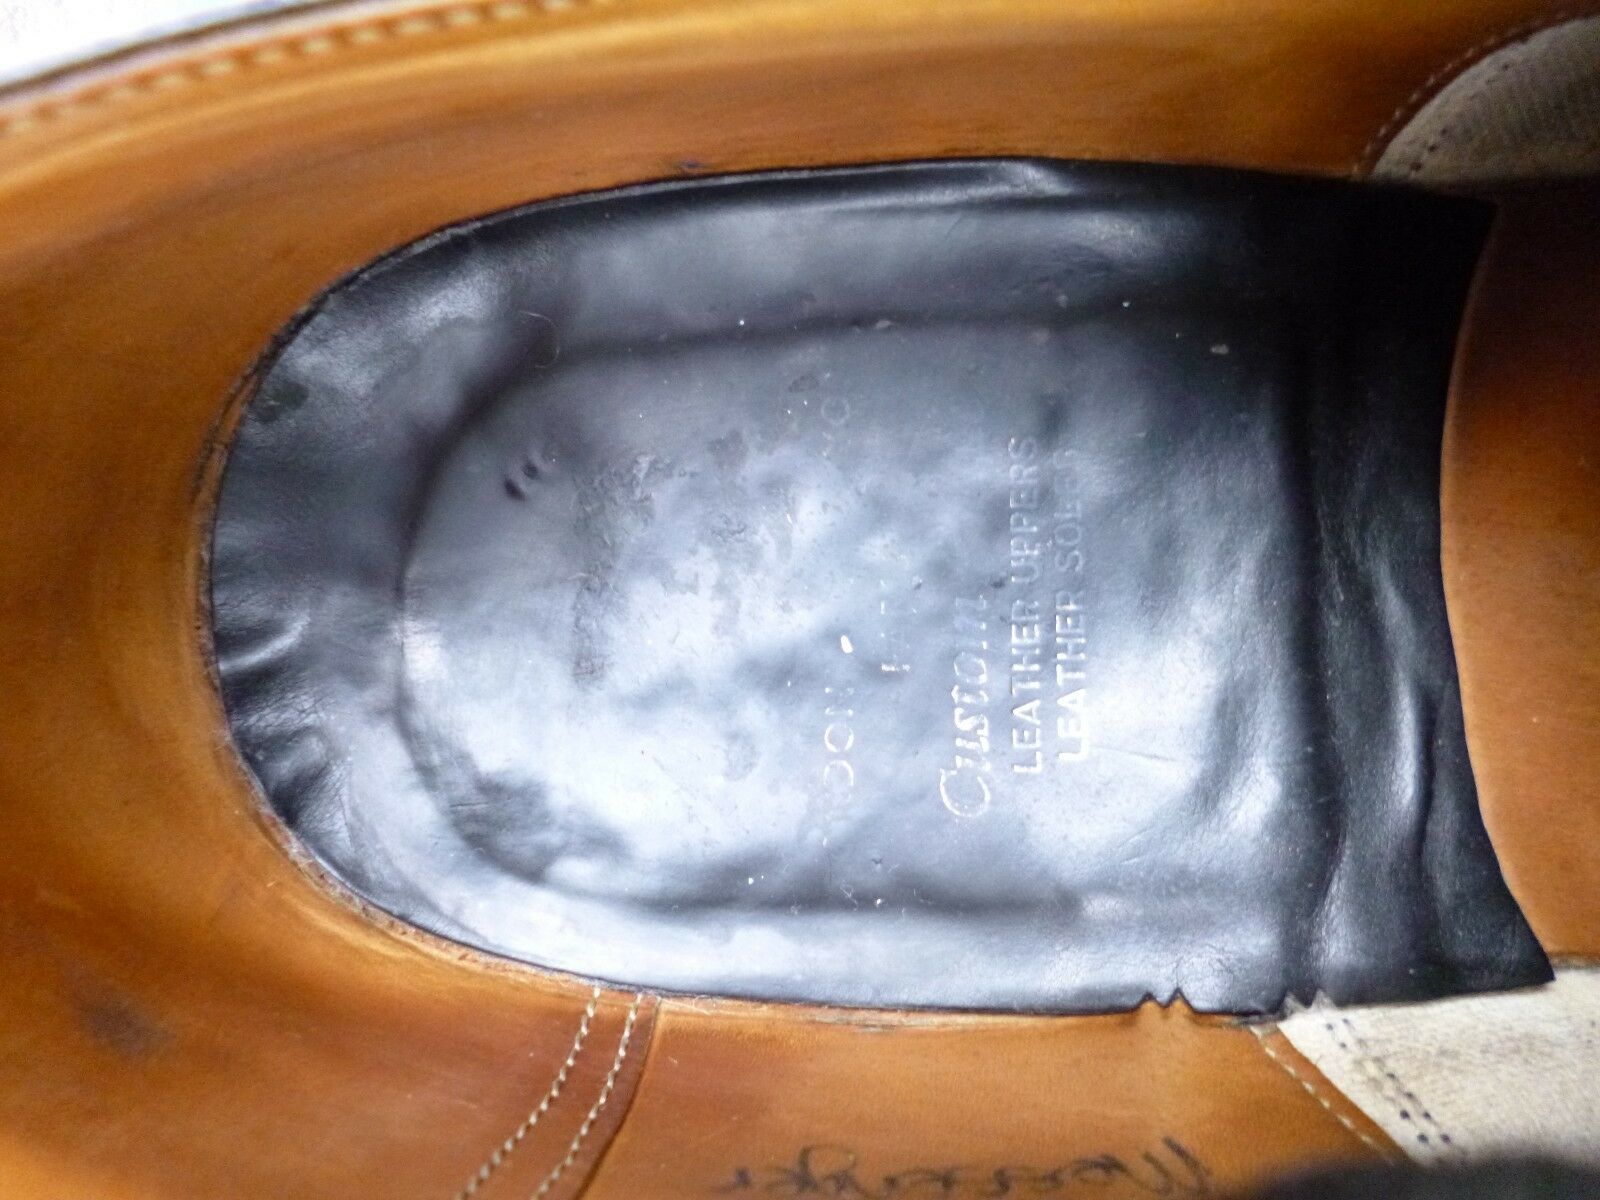 CHURCH VINTAGE VINTAGE VINTAGE OXFORD - schwarz - UK 8 (WIDE) – MESSENGER – VERY GOOD CONDITION 8a3cb9